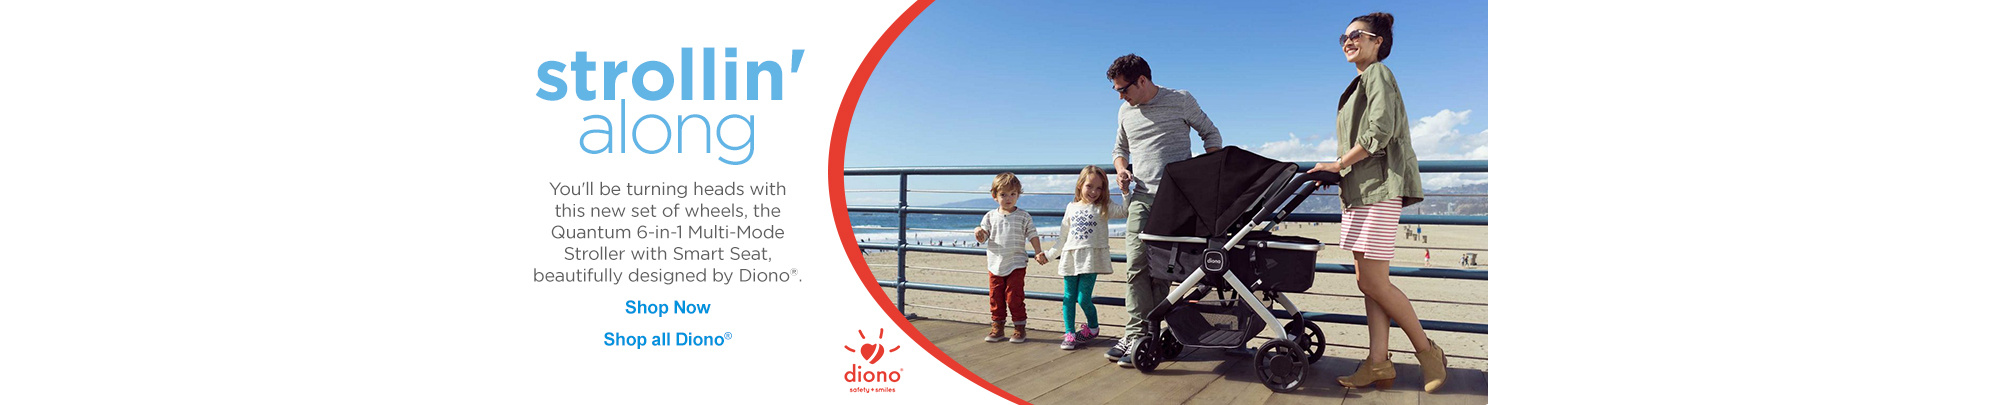 Shop Diono Strollers